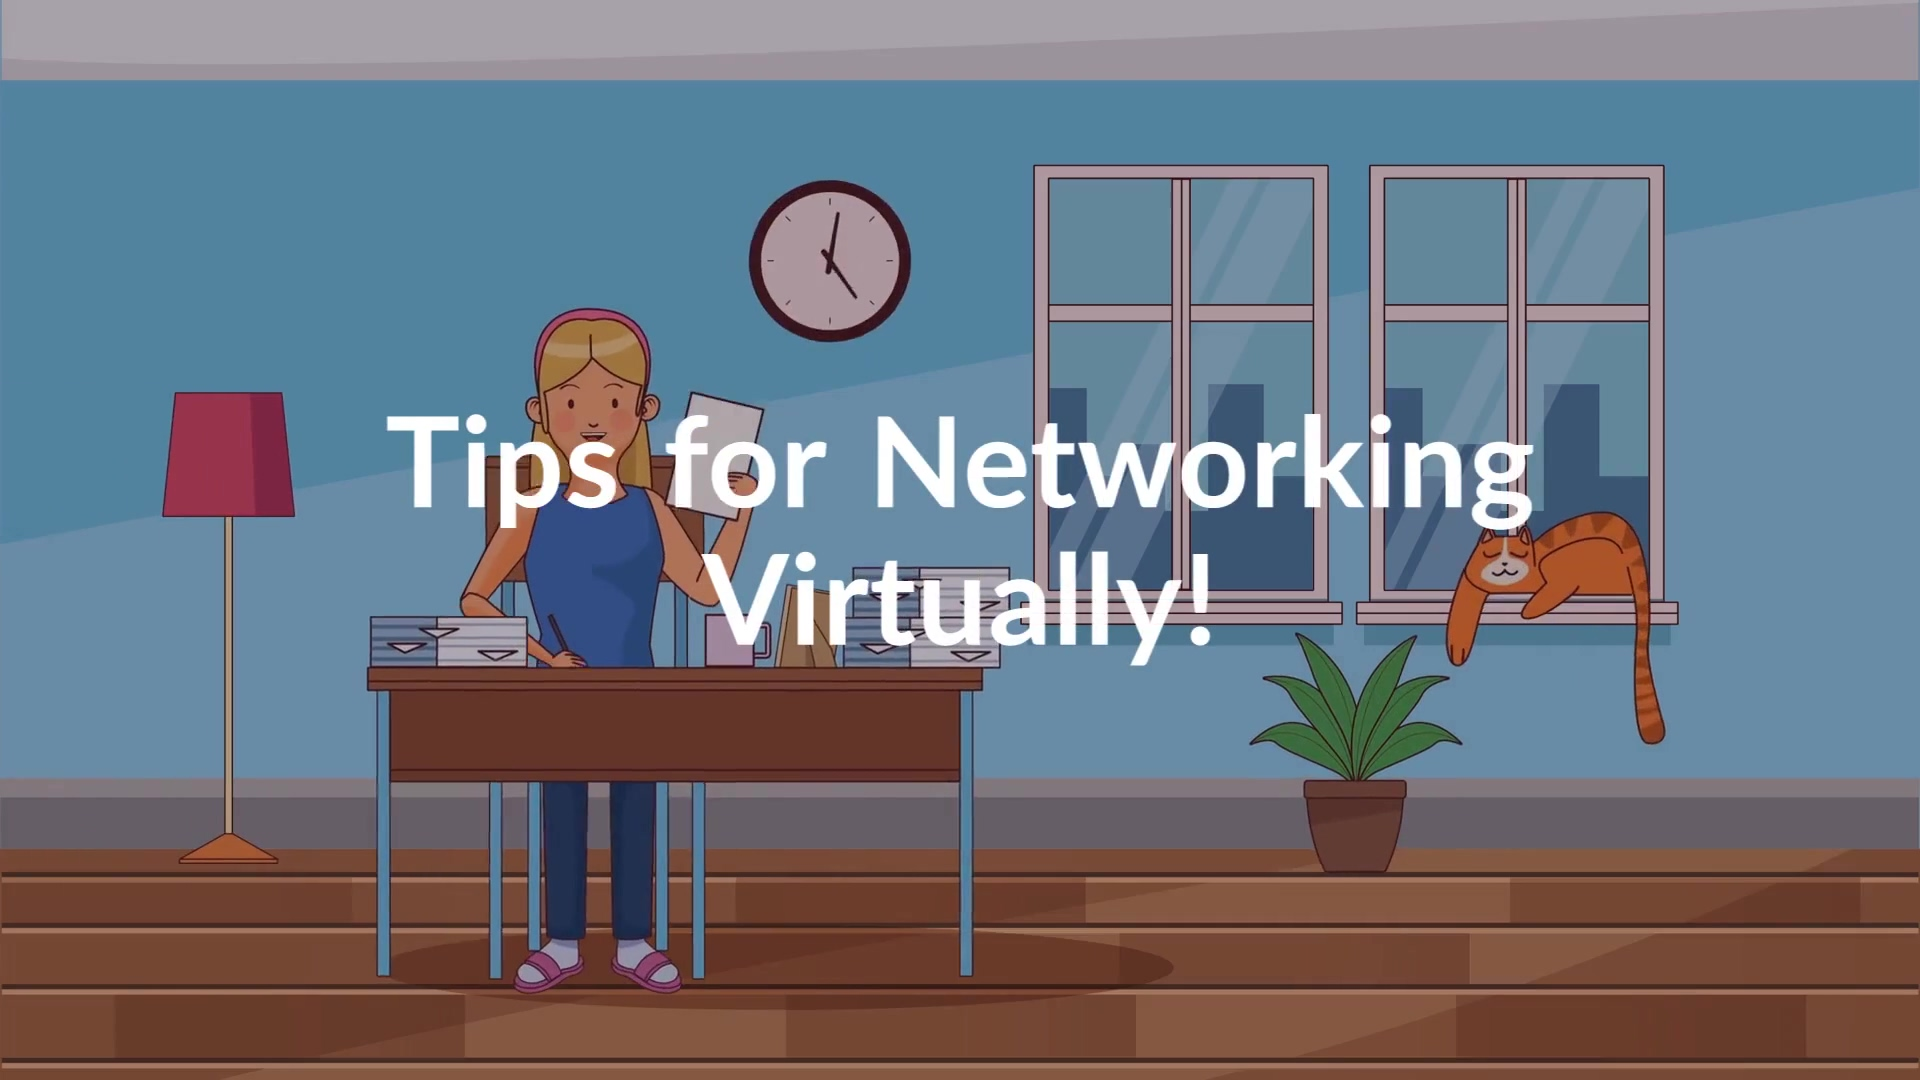 tips-for-networking-virtually-1